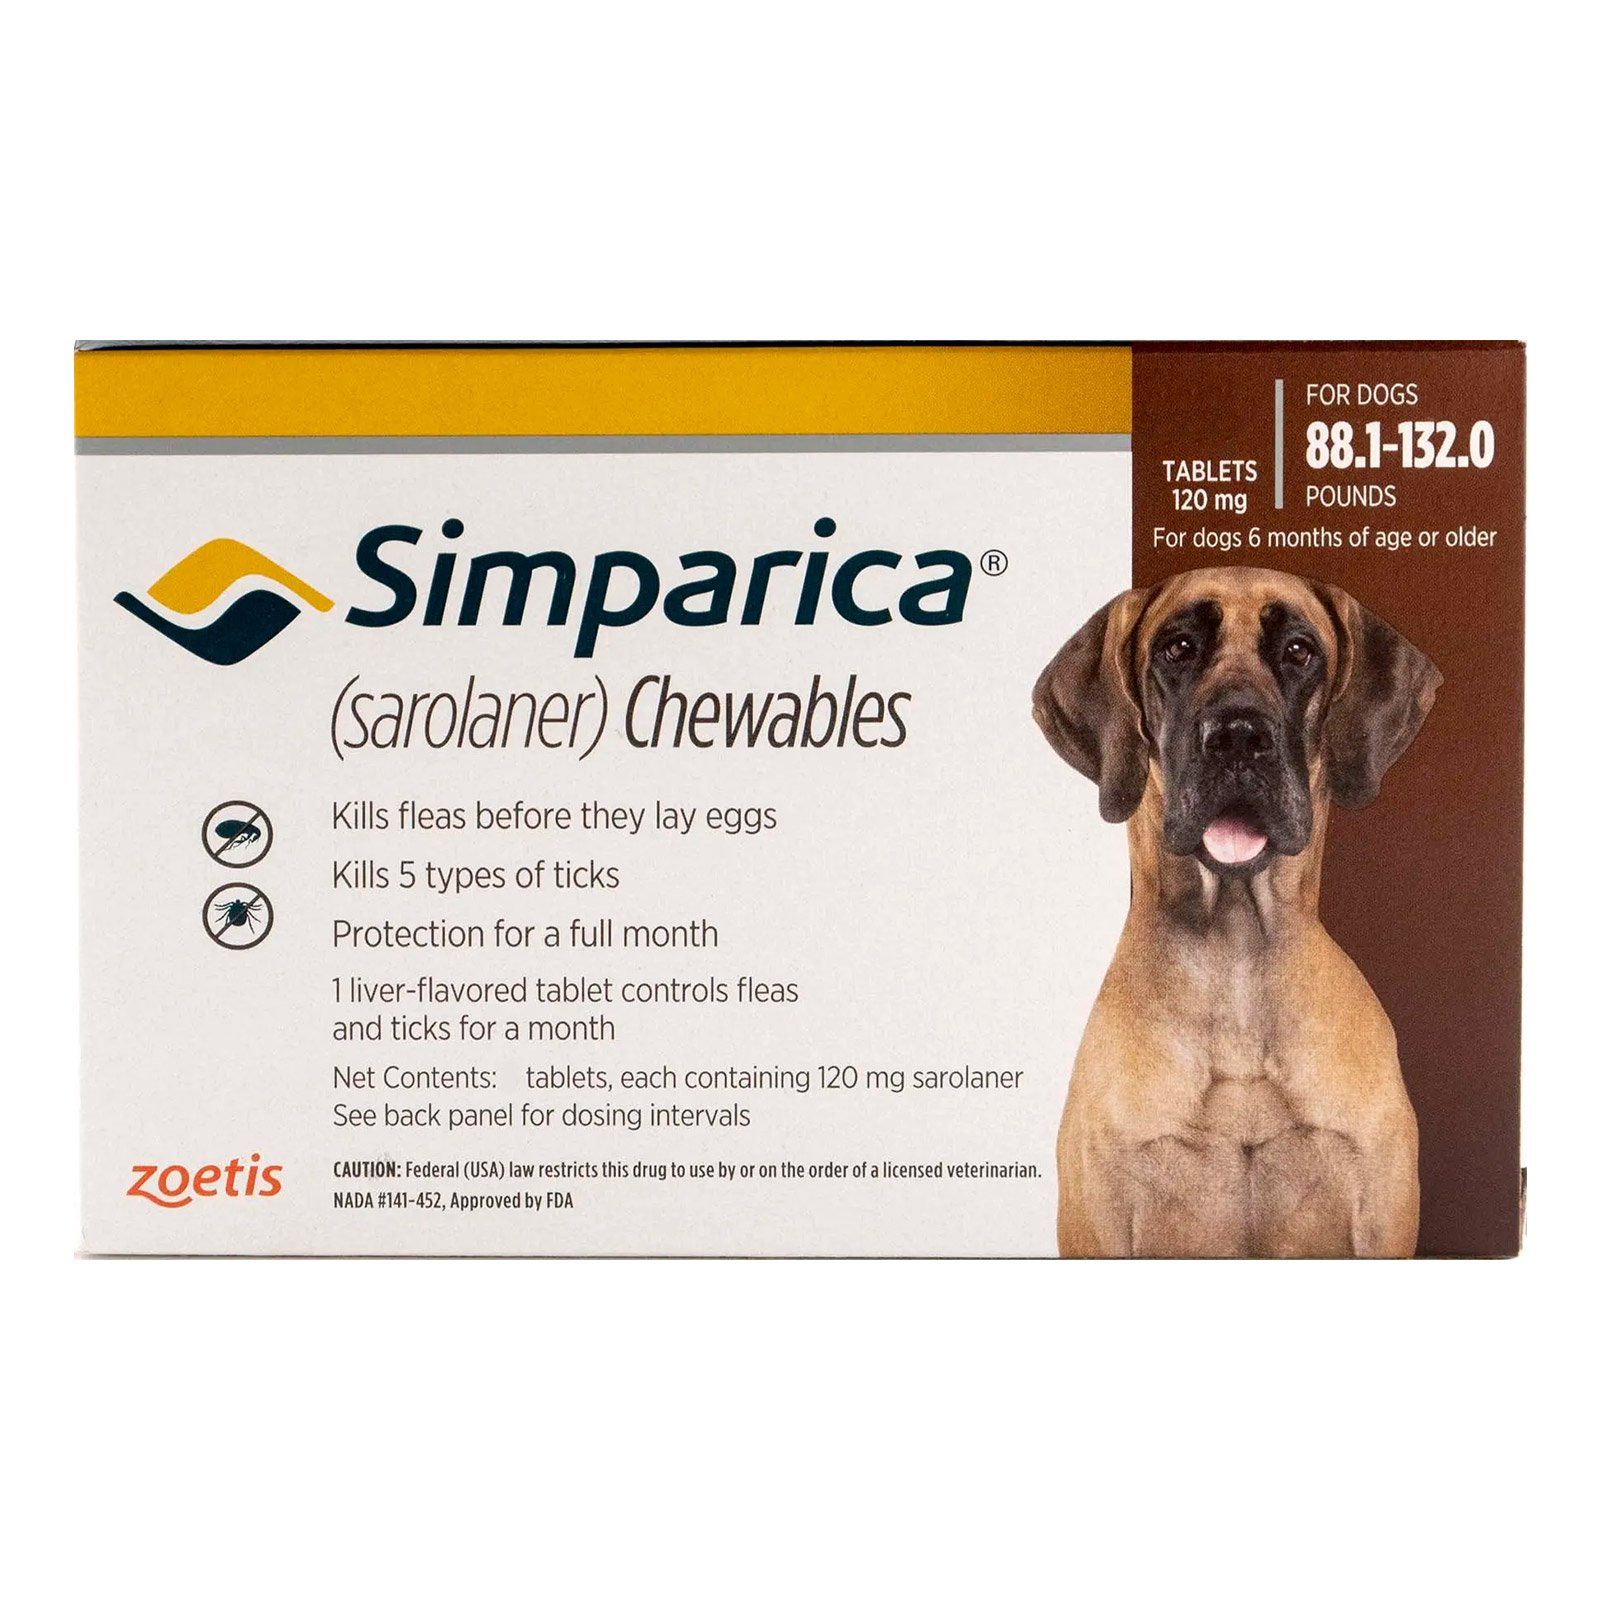 636855381044394285-simparica-88-1-132-0-lbs-1-chewable-tab-6[1]